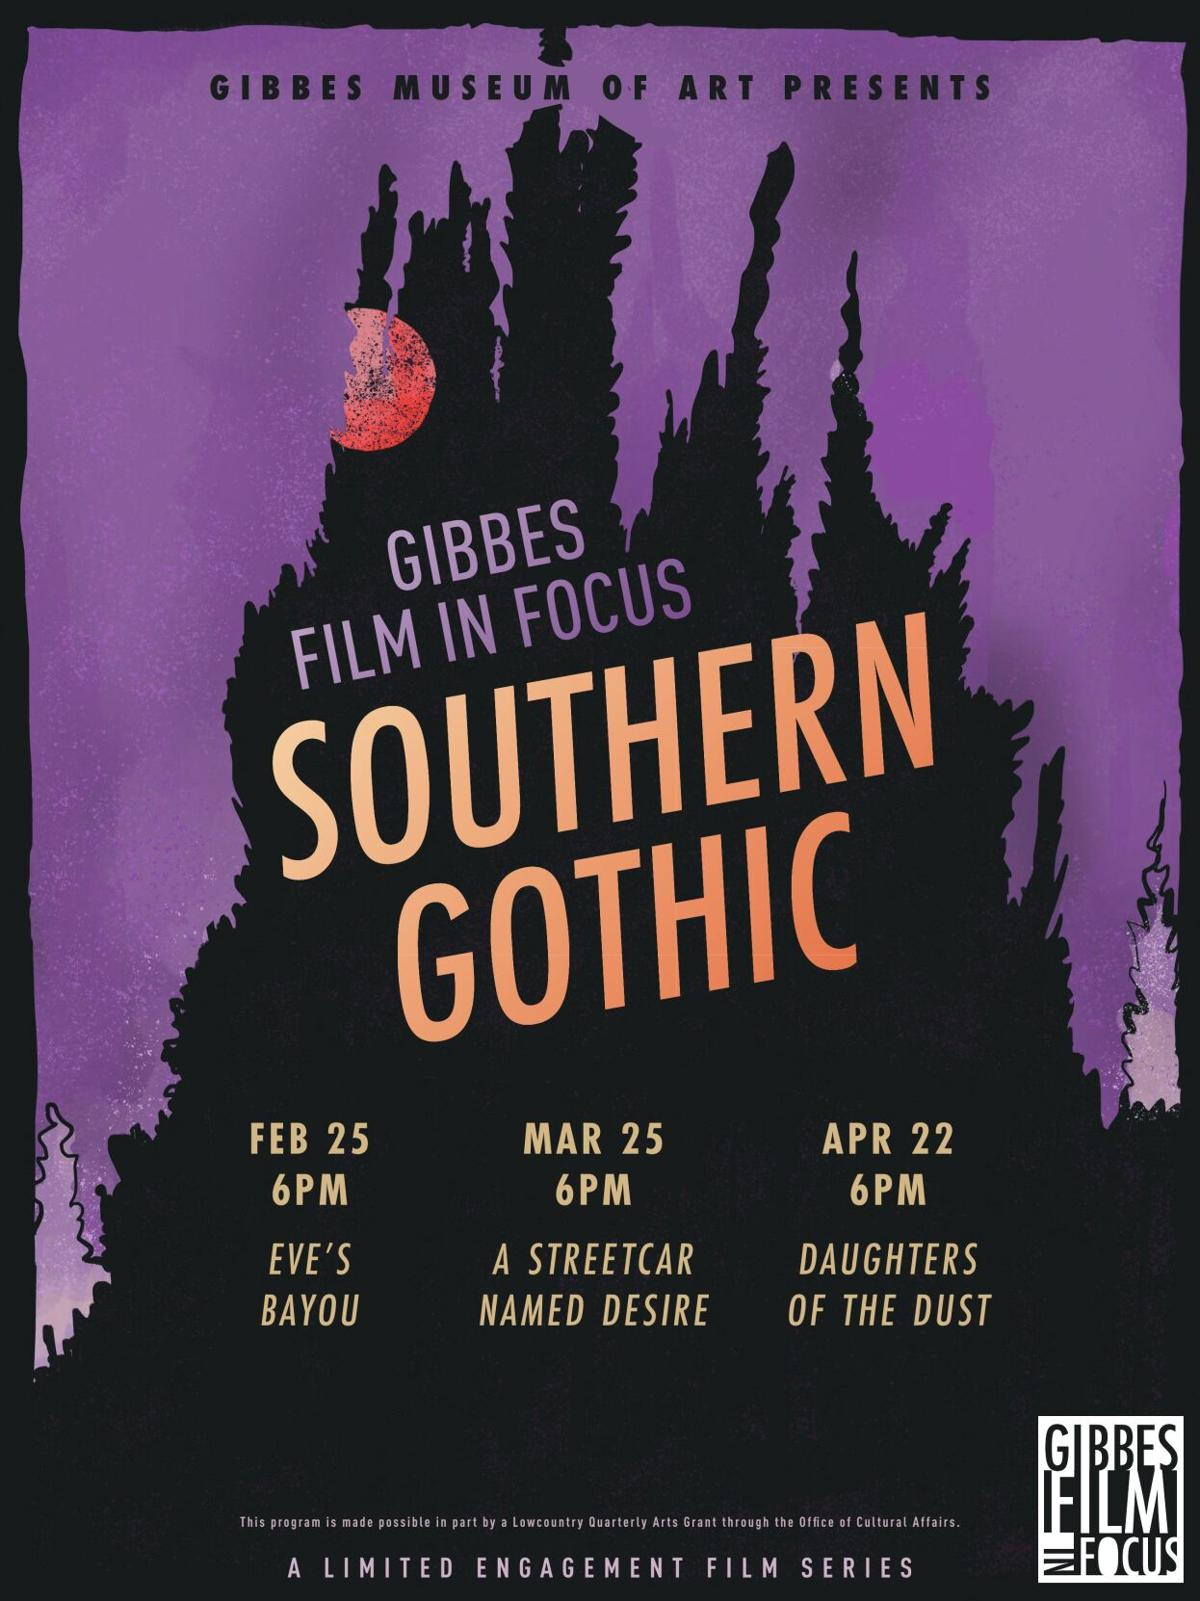 Gibbes Southern Gothic film series poster